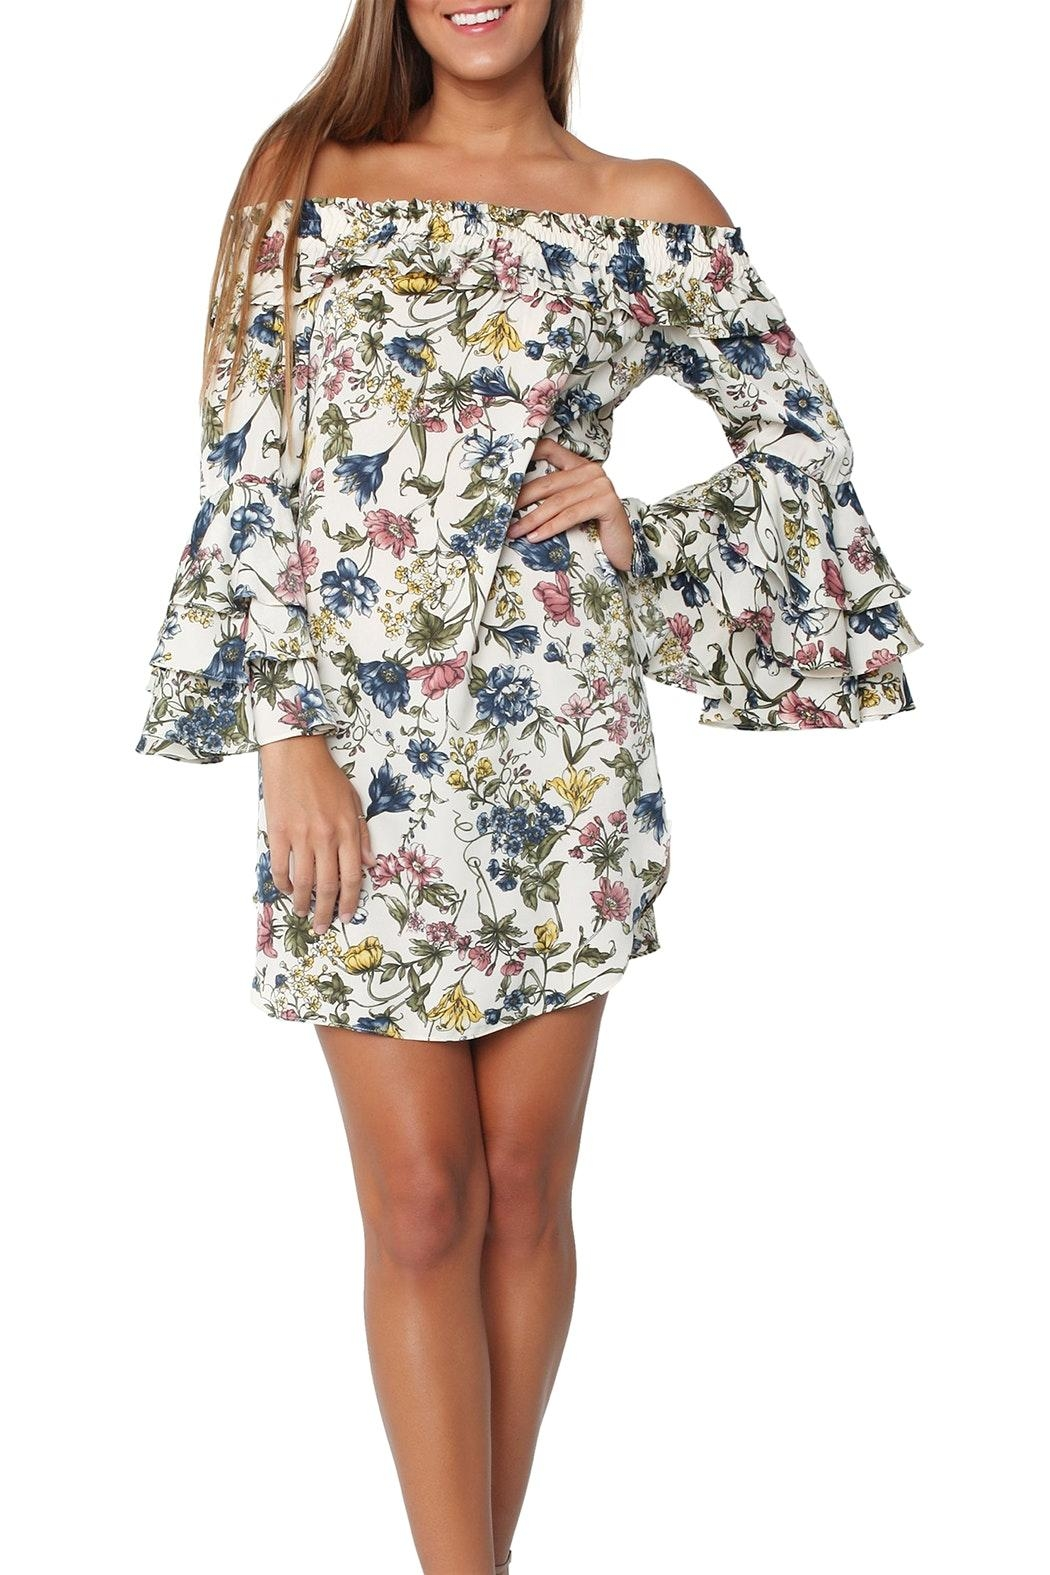 Misa Amal Floral Dress - Main Image